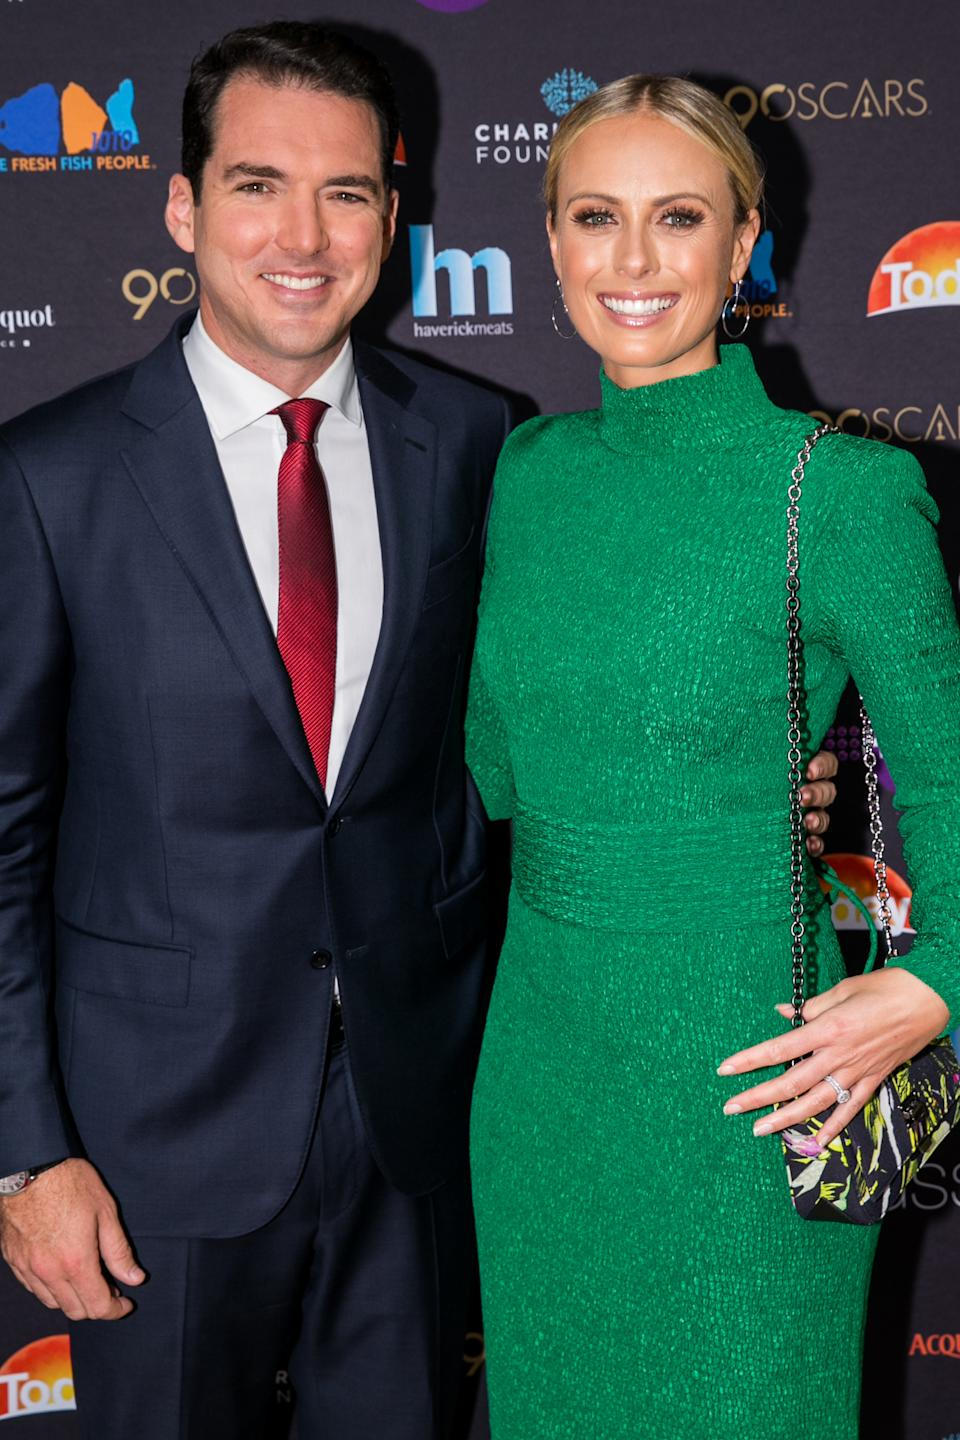 A photo of Sylvia Jeffreys and Peter Stefanovic at the Channel 9 Charity Oscars lunch raising money for the Charlie Teo Foundation at Glass Restaurant, The Hilton, on March 5, 2018 in Sydney, Australia.